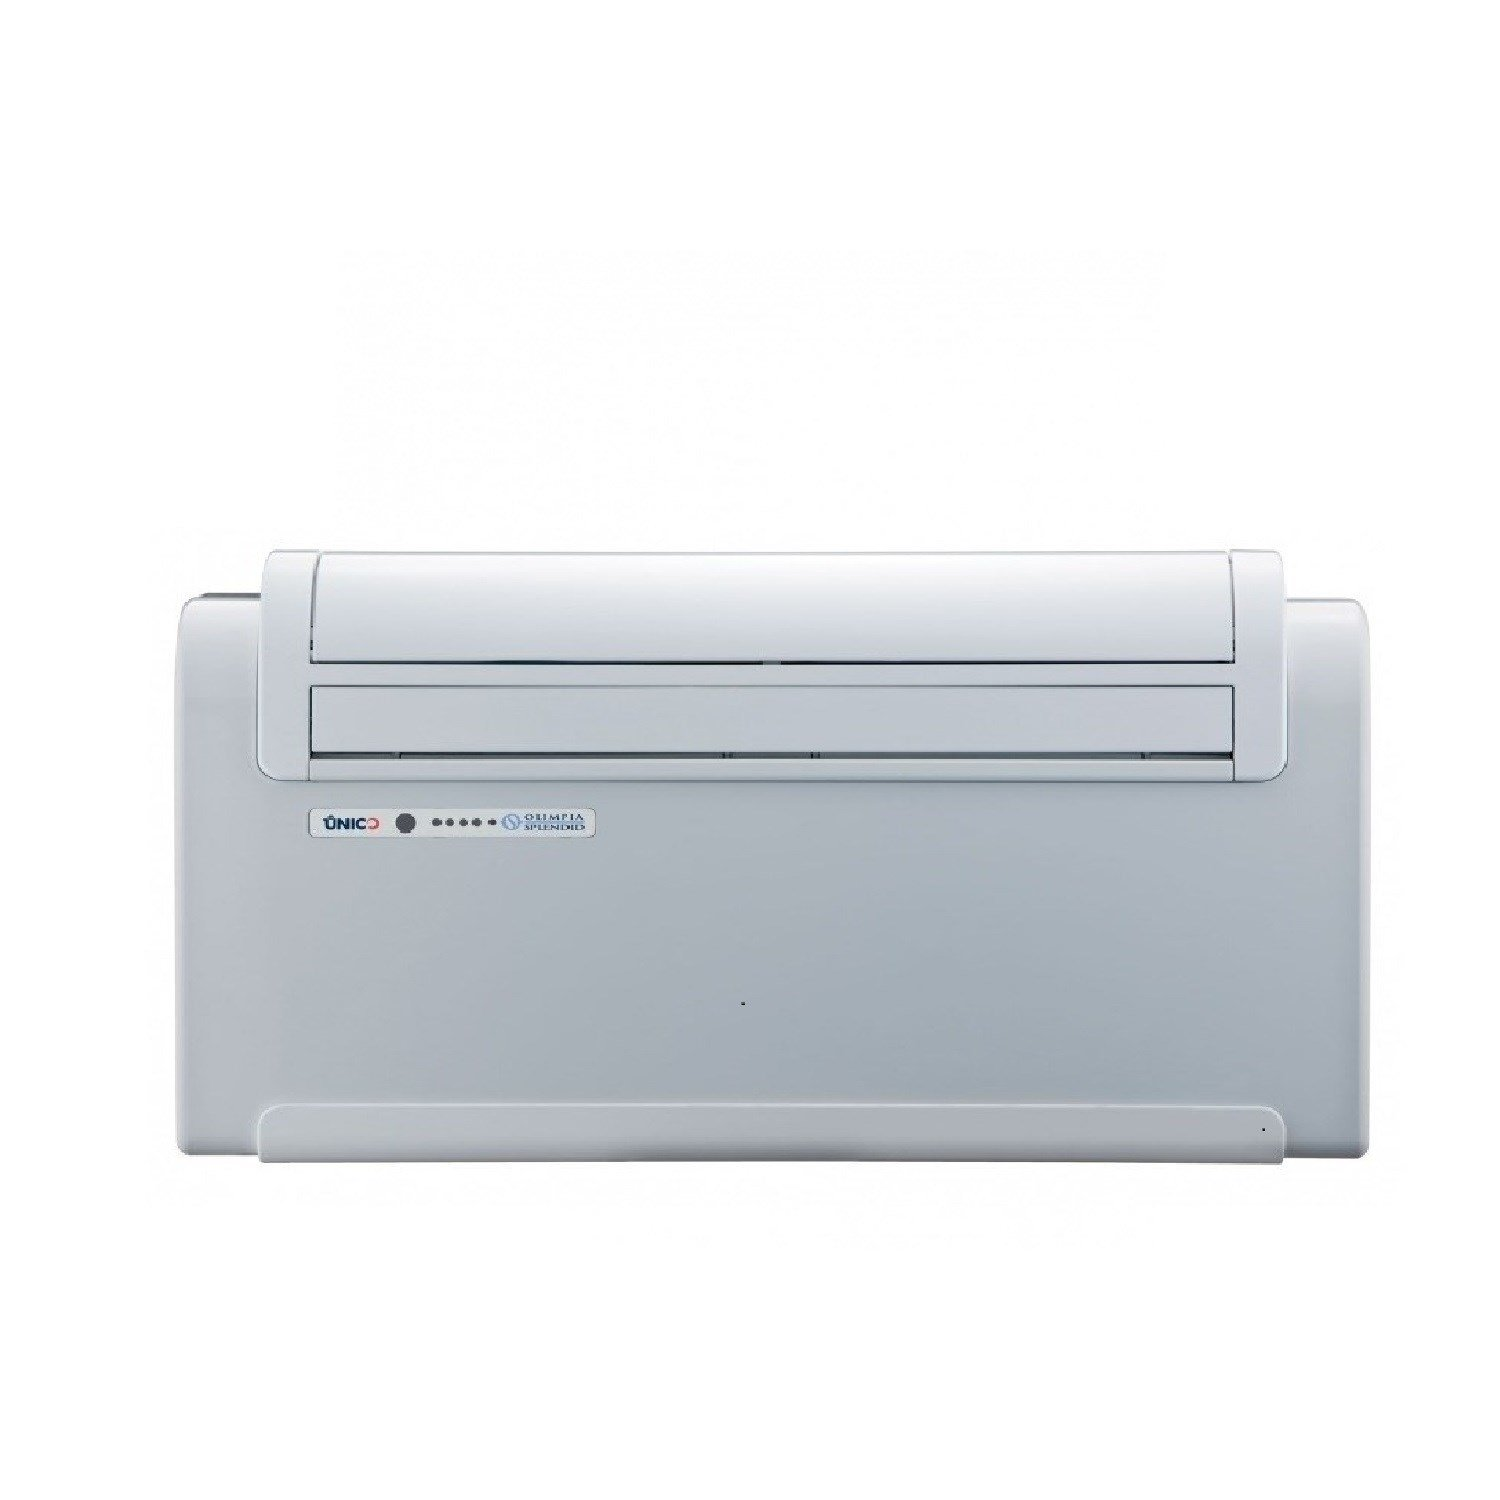 Olimpia Unico R 12 HP 9000 BTU No Outdoor Unit Wall Mounted Air Conditioner and Low Temperature Heat Olimpia Splendid